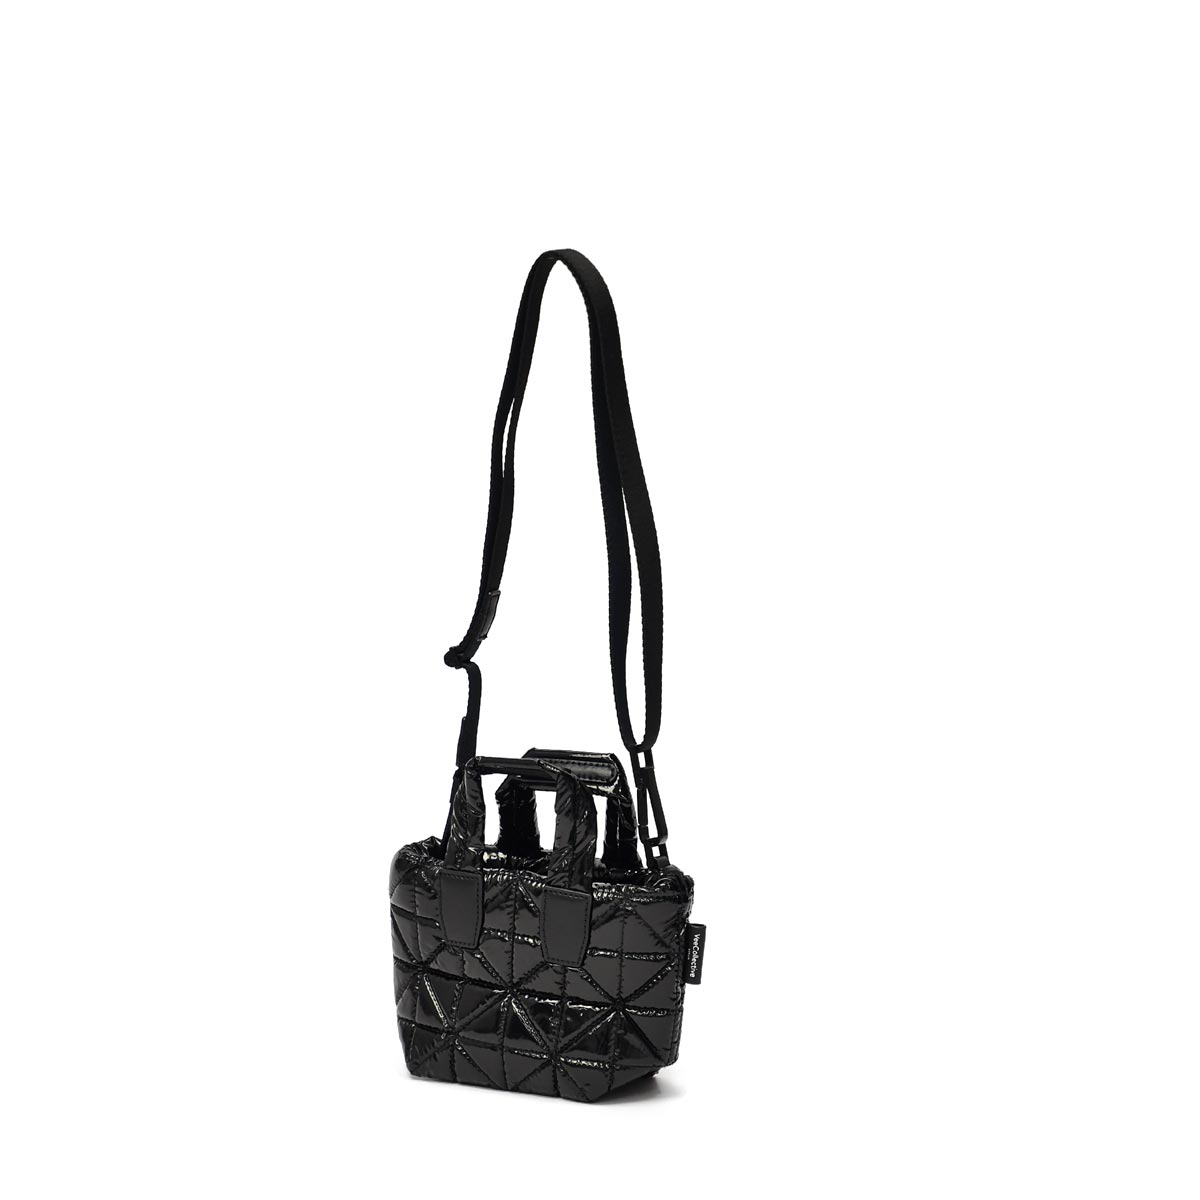 VeeCollective【ヴィーコレクティブ】トートバッグ VEE TOTE MICRO BLACK VINYL ナイロン ブラック